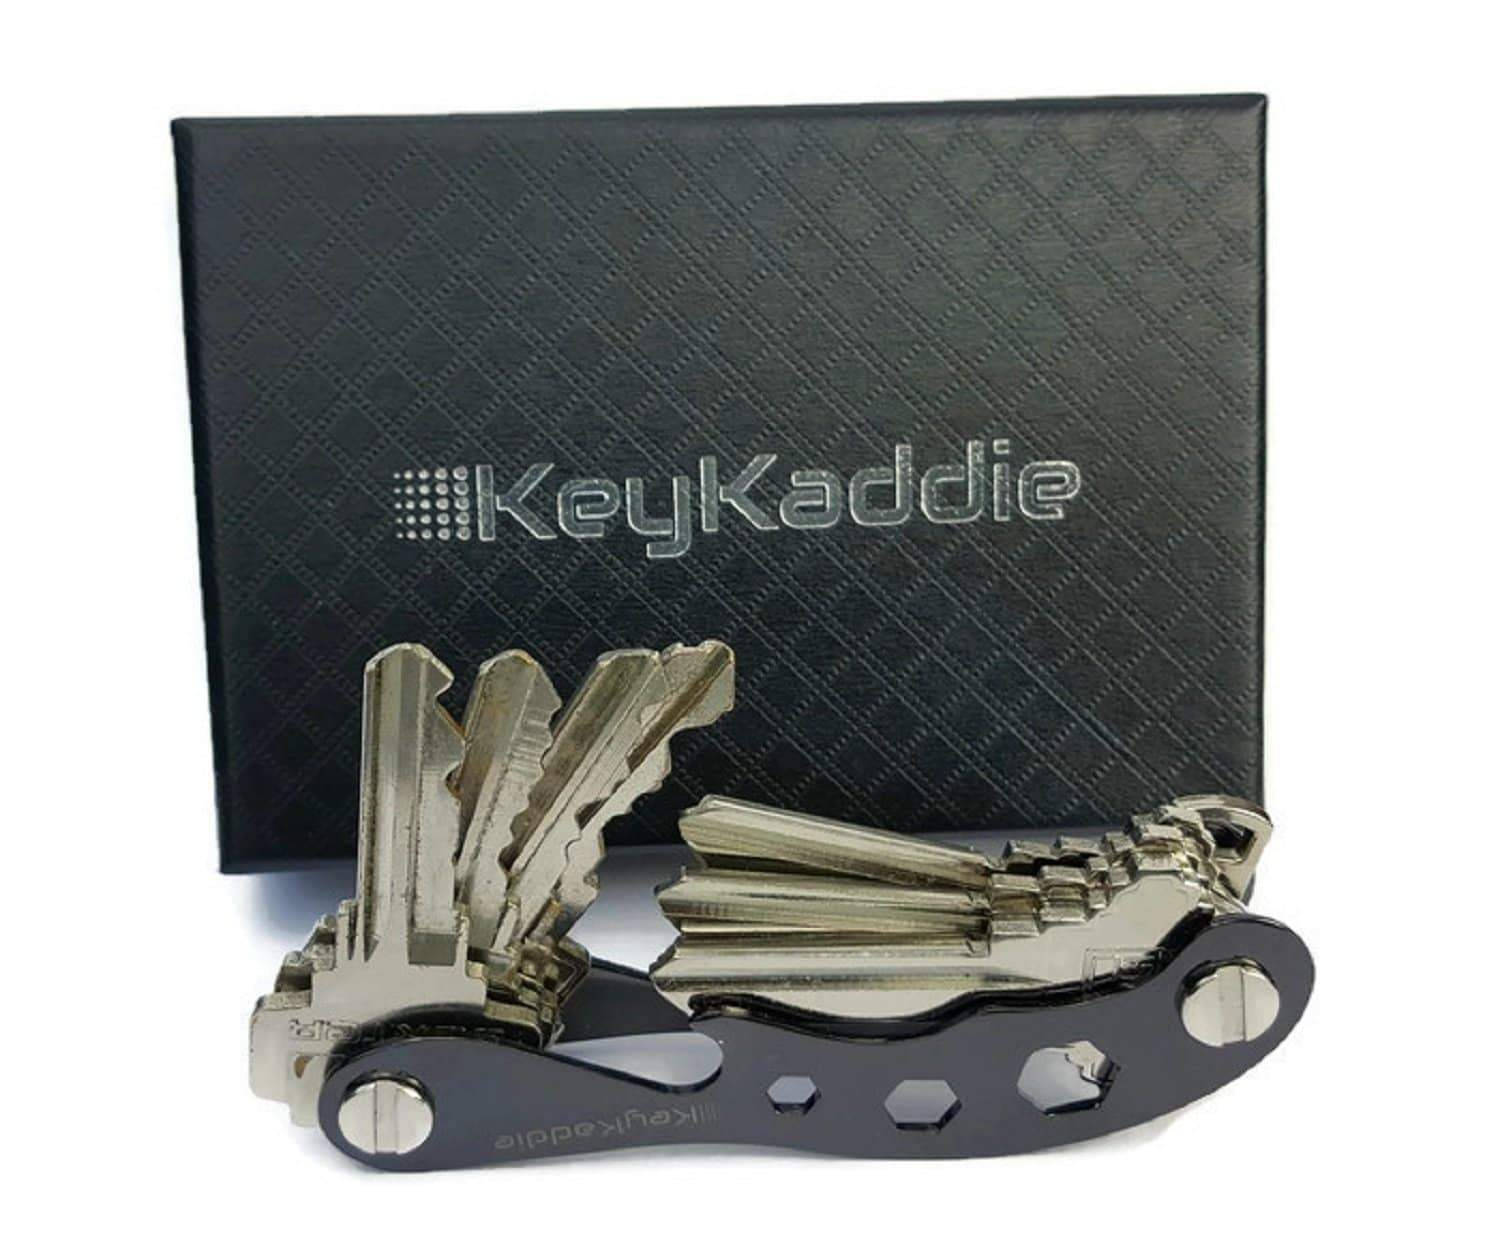 Key Holder │ Compact Key Organizer, Multitool Keychain and Bottle Opener including Durable Zinc Frame (Black), Anti Loosening Spacers & Screws -by KeyKaddie